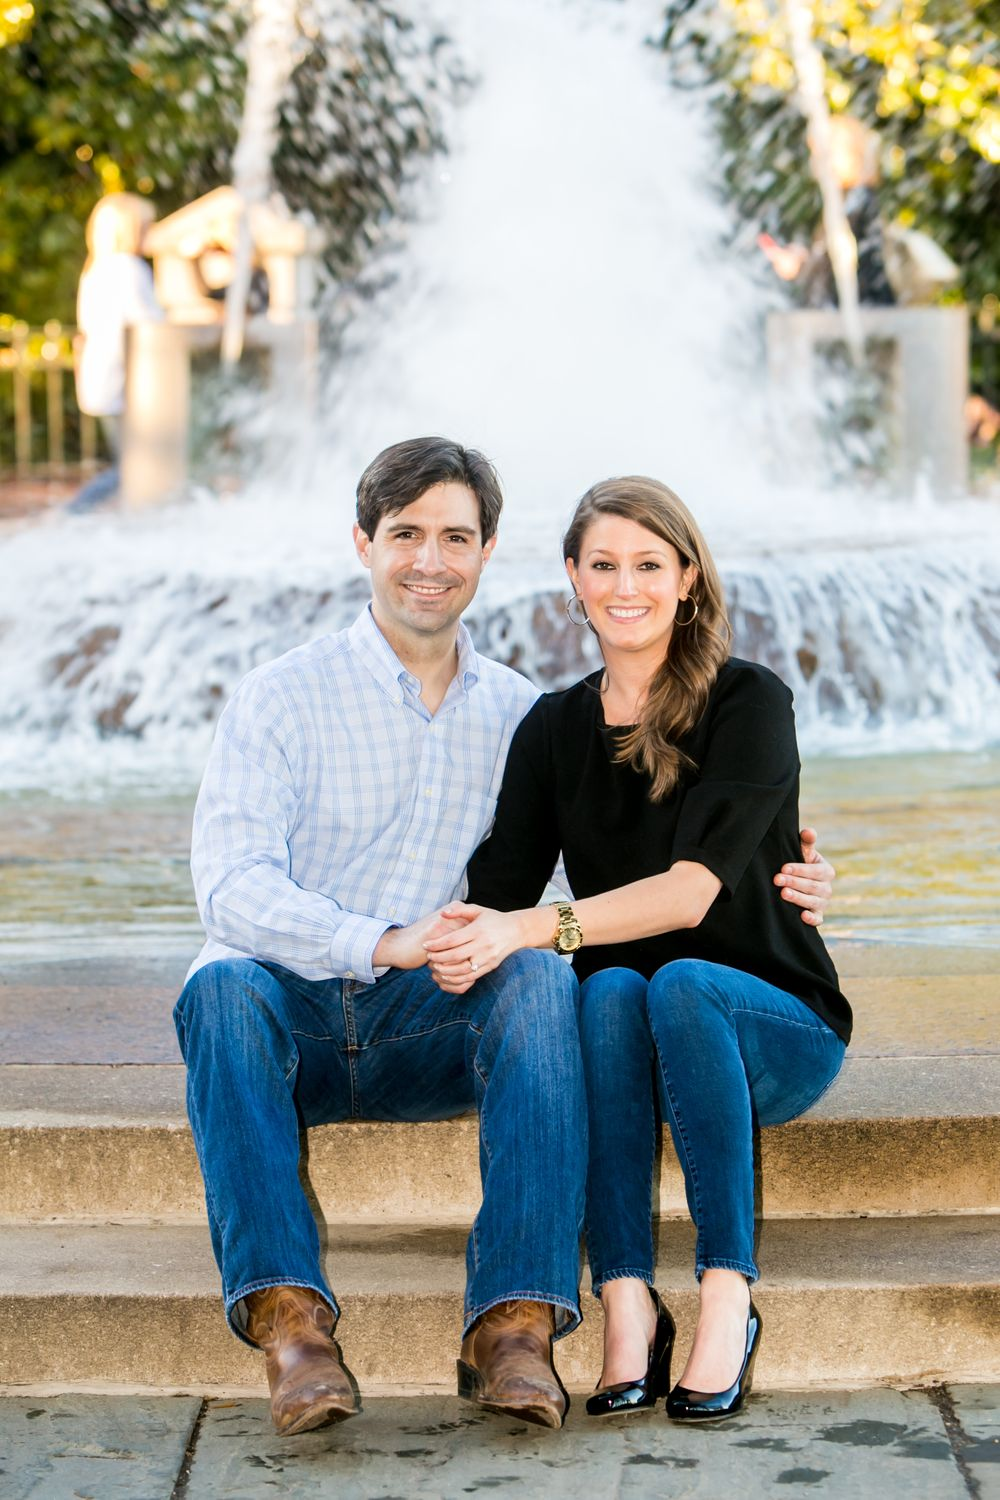 Ashley and Ben's engagement portrait in front of the fountain at Waterfront Park in Charleston, SC